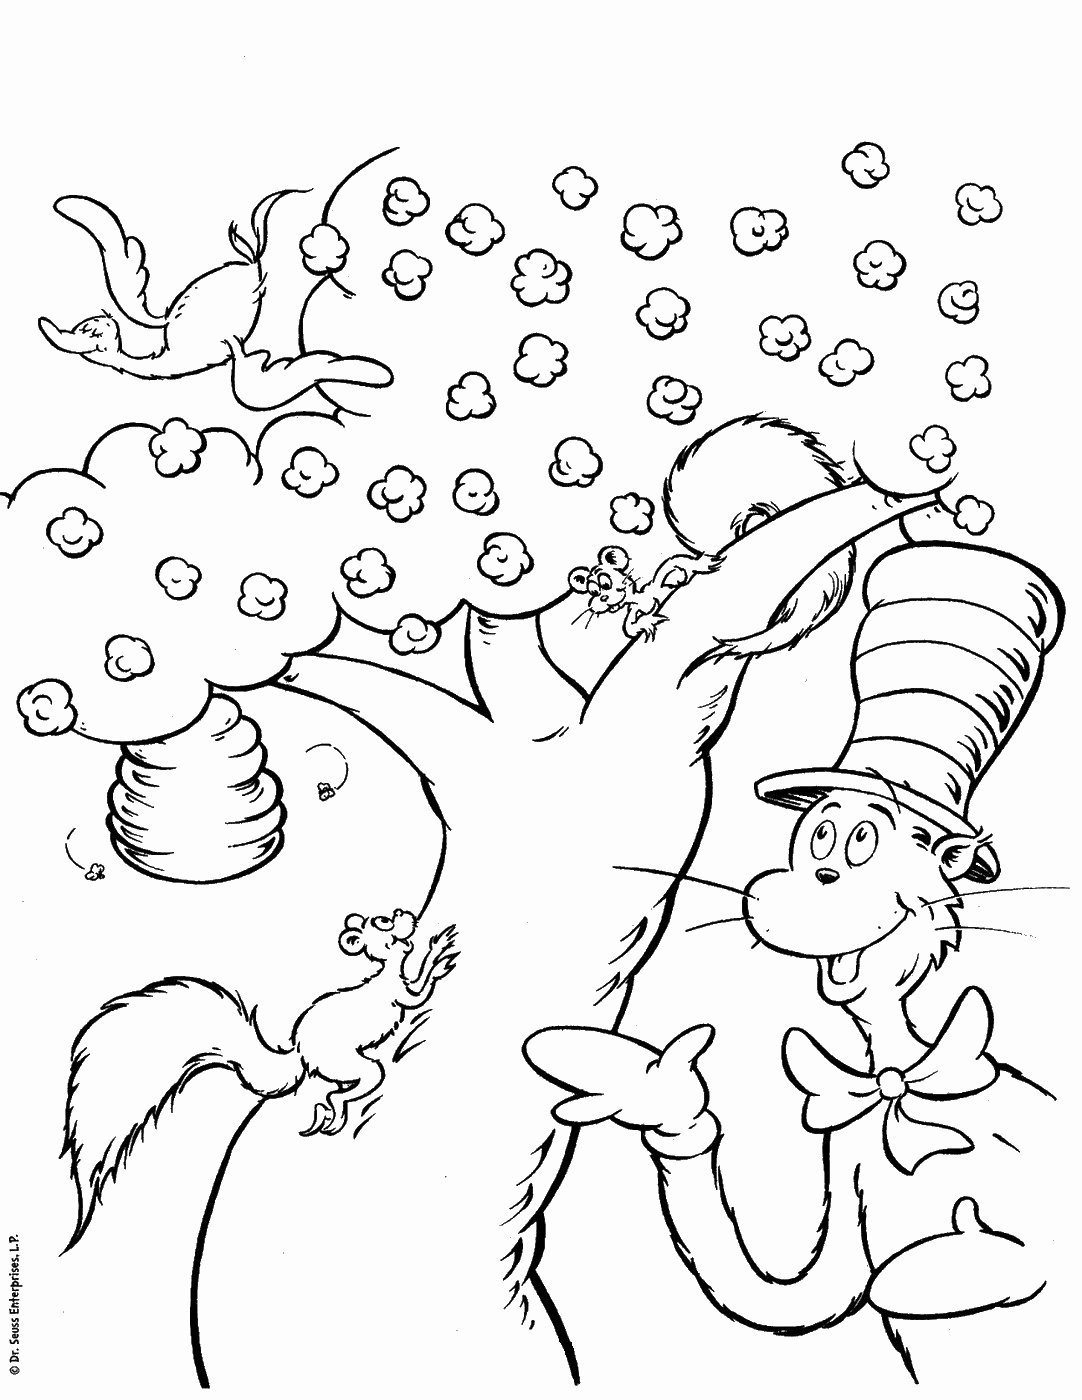 Cat In the Hat Worksheets for Preschoolers Unique Cat In the Hat Coloring Pages – Coloringcks